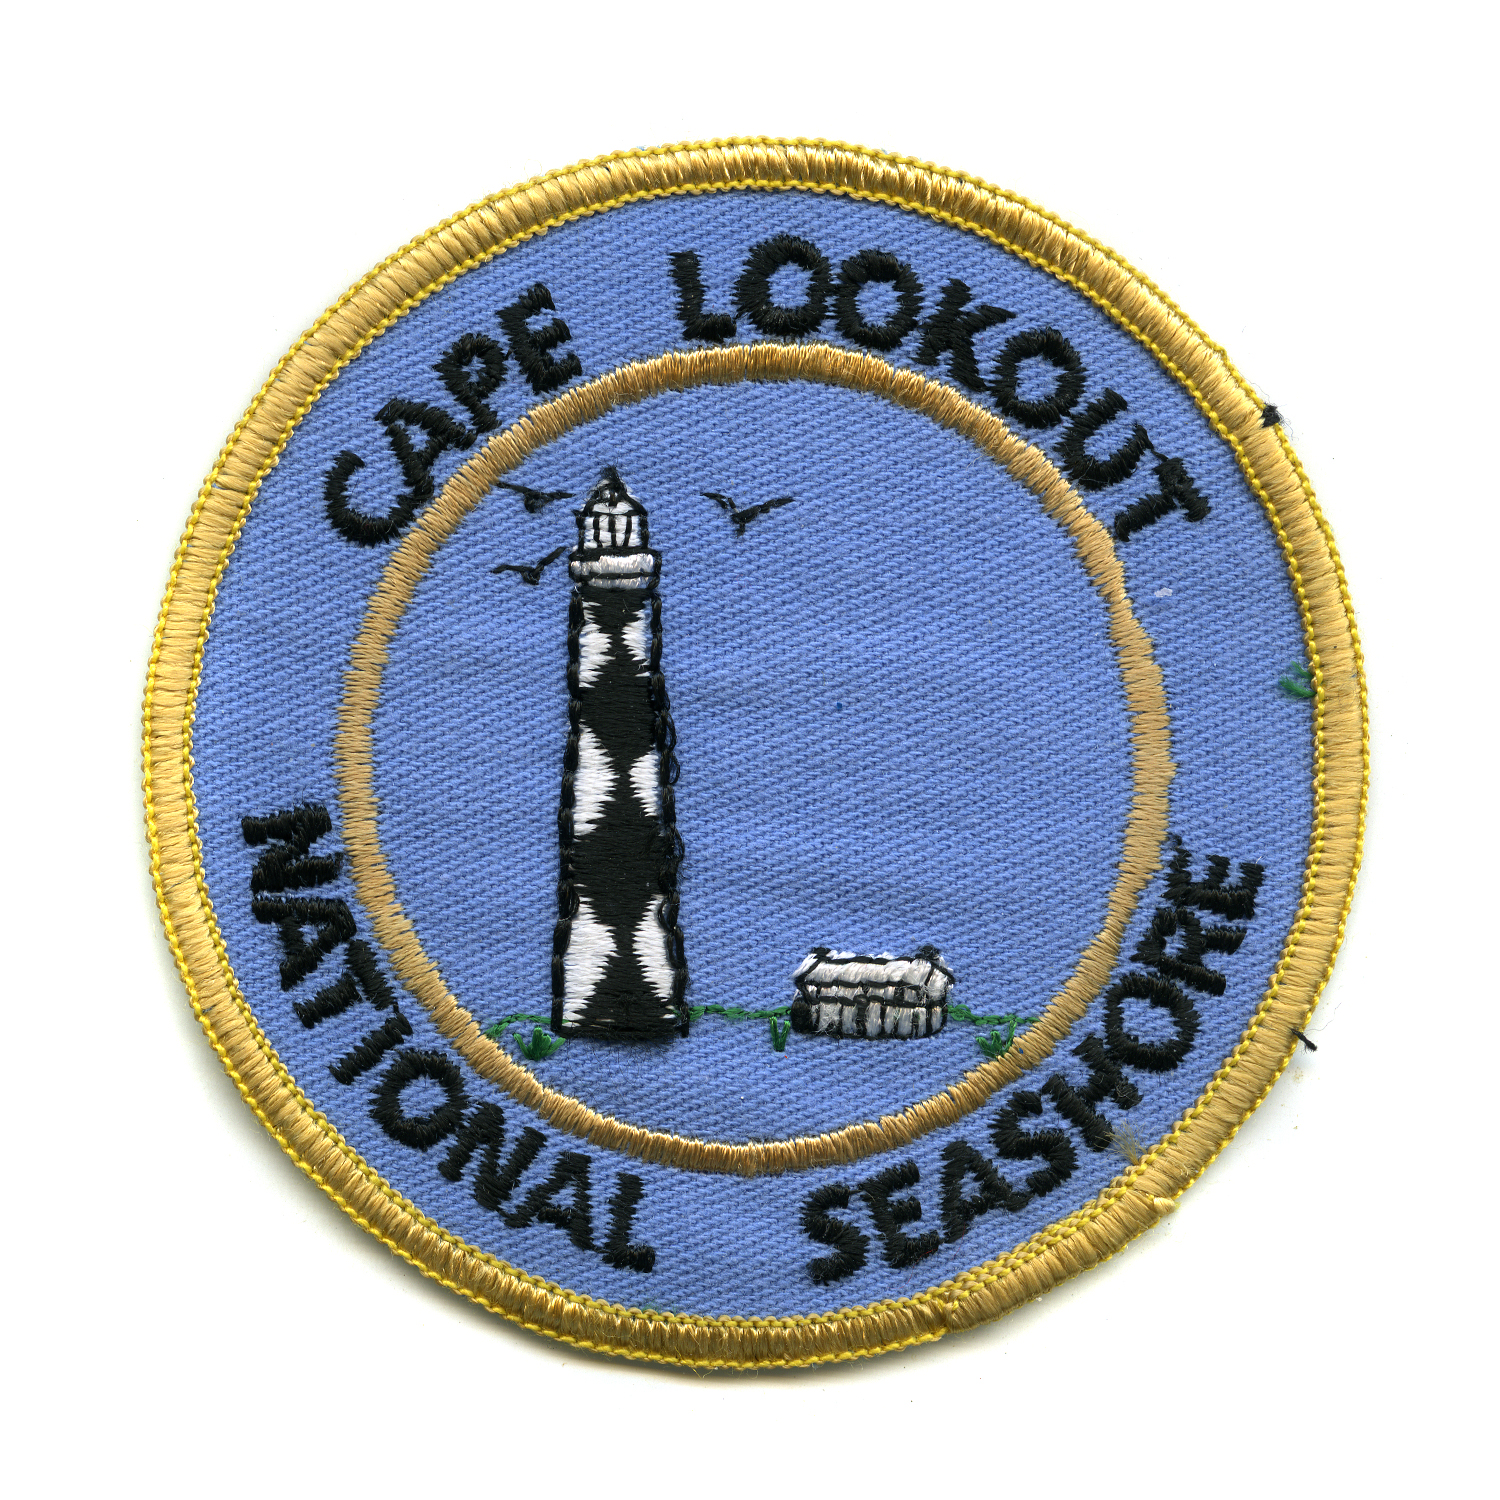 nps_patch_project_cape_look_out_national_park_seashore_patch_1.jpg